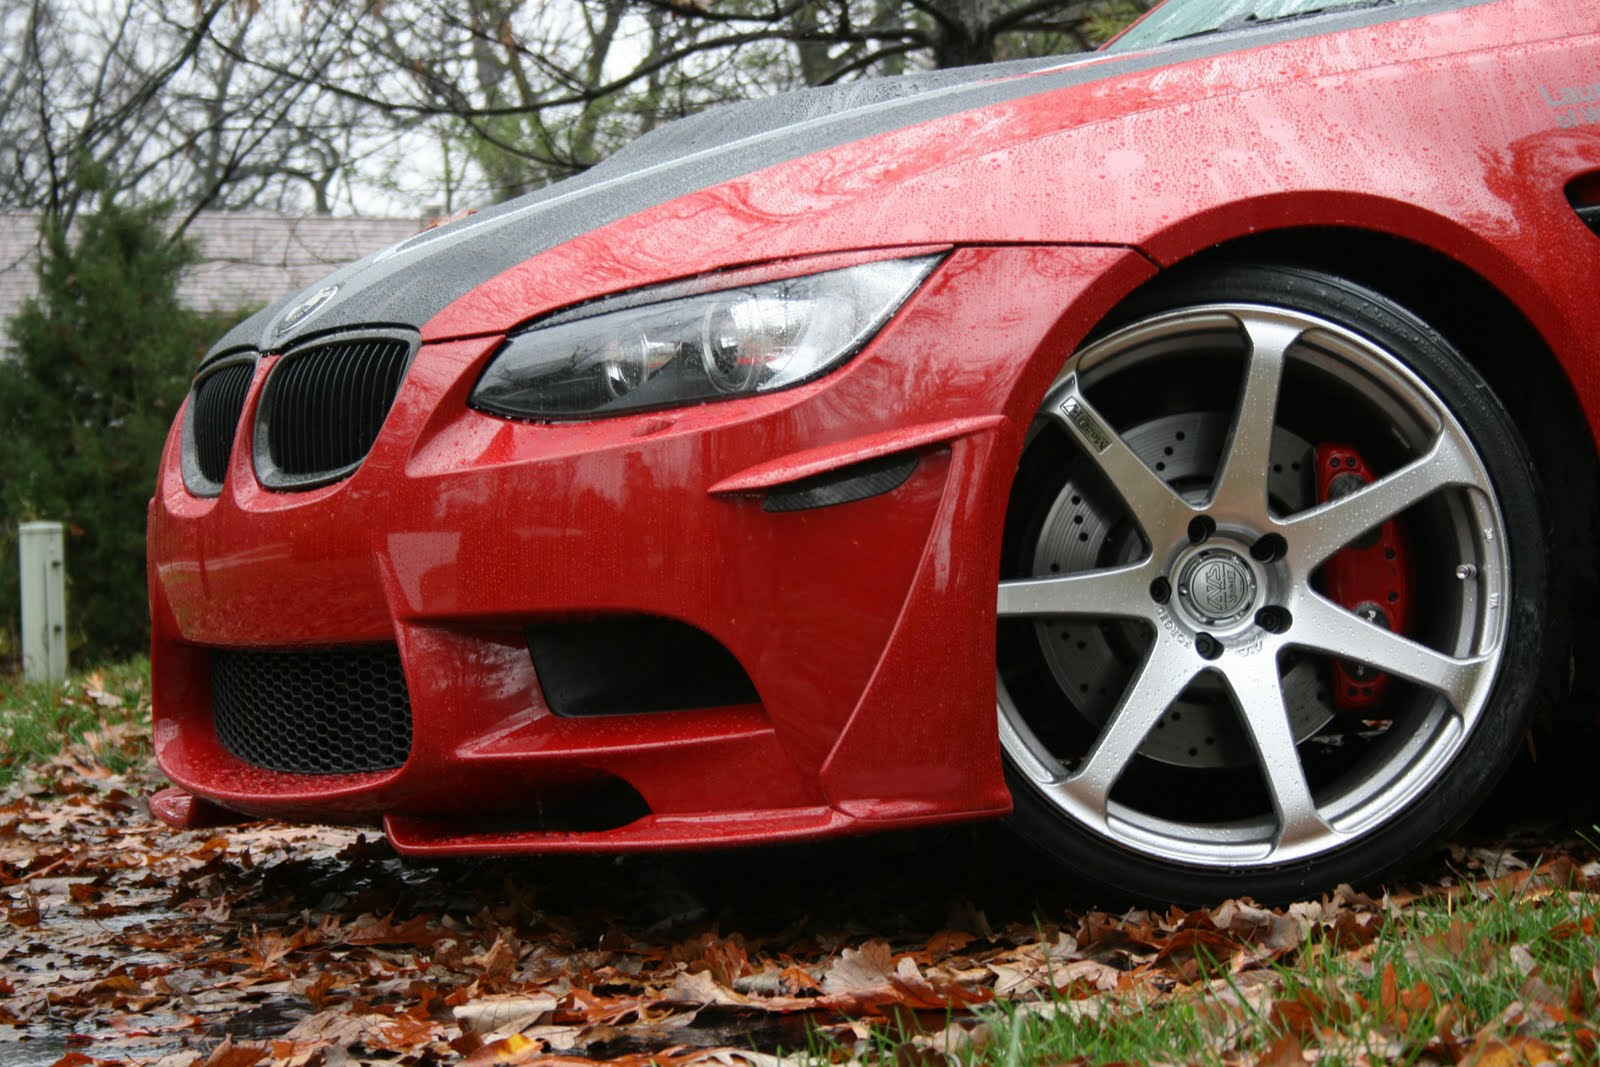 Again a side view of the front spoiler you will also notice that the signature ravenus studios brake caliper cover has been applied to the m3